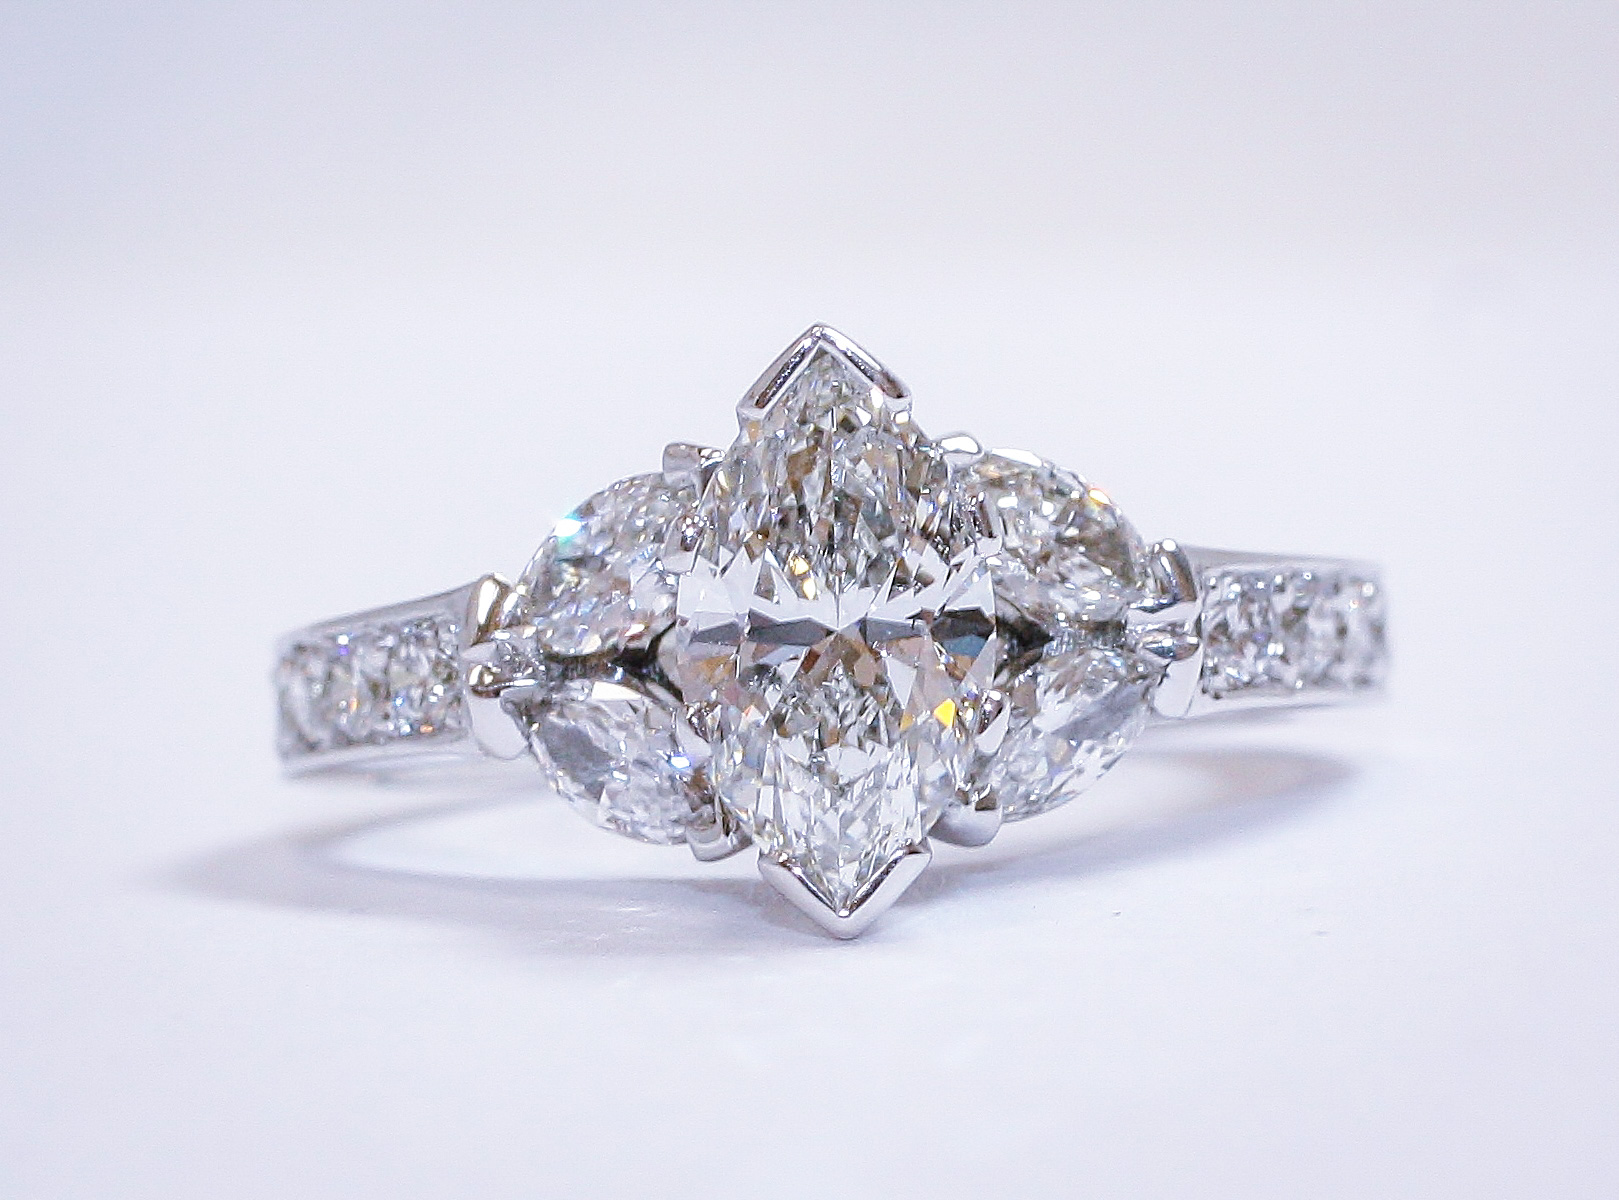 Sell_My_Diamond_Engagement_Ring Engagement Ring.  Sell_Vintage_Marquis_Diamond_Rings